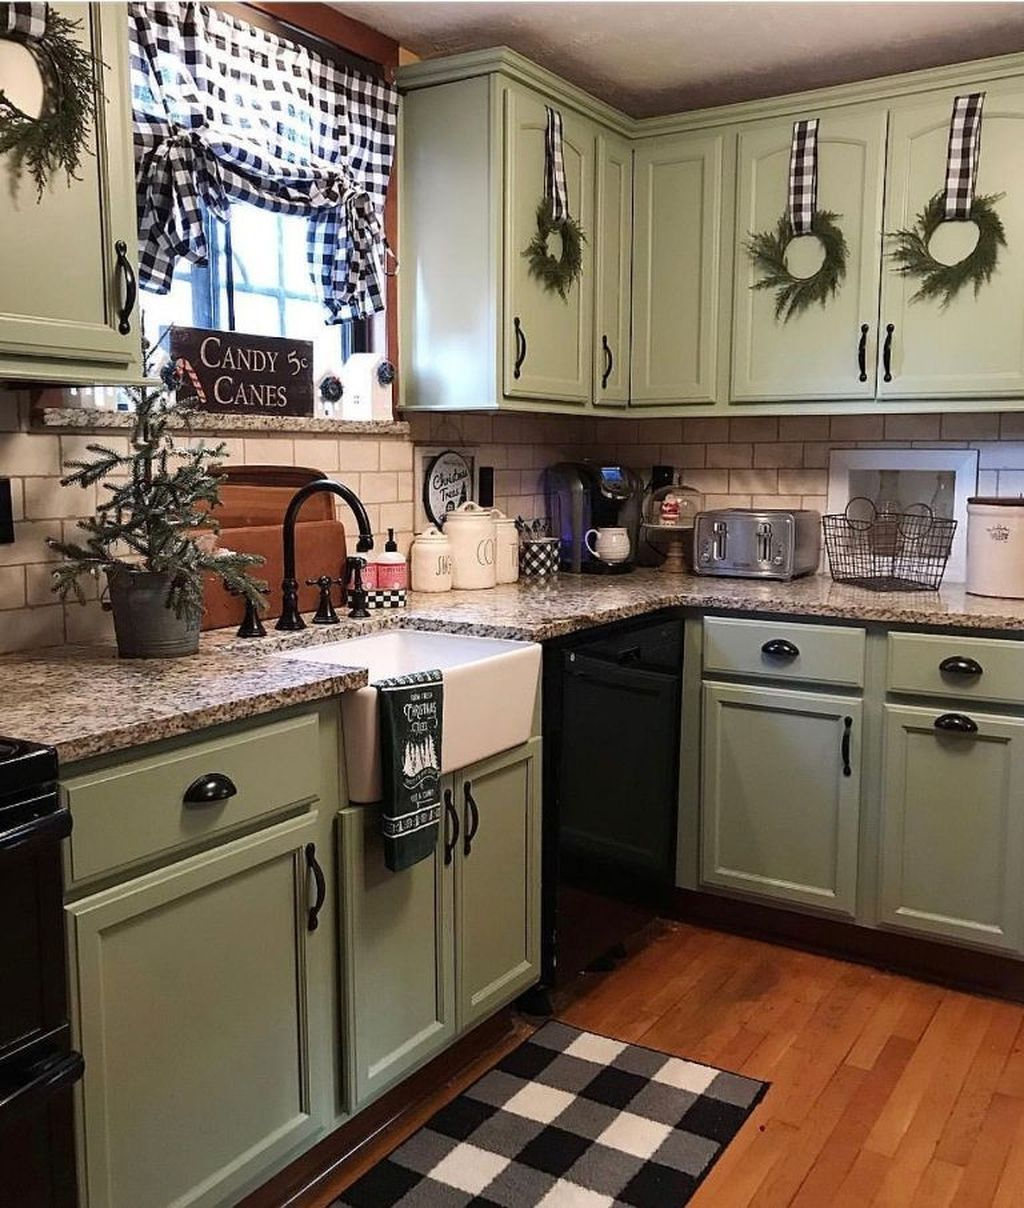 Ideas For Redoing Kitchen Cupboards: 36 Beautiful Farmhouse Cabinets Ideas For Kitchen